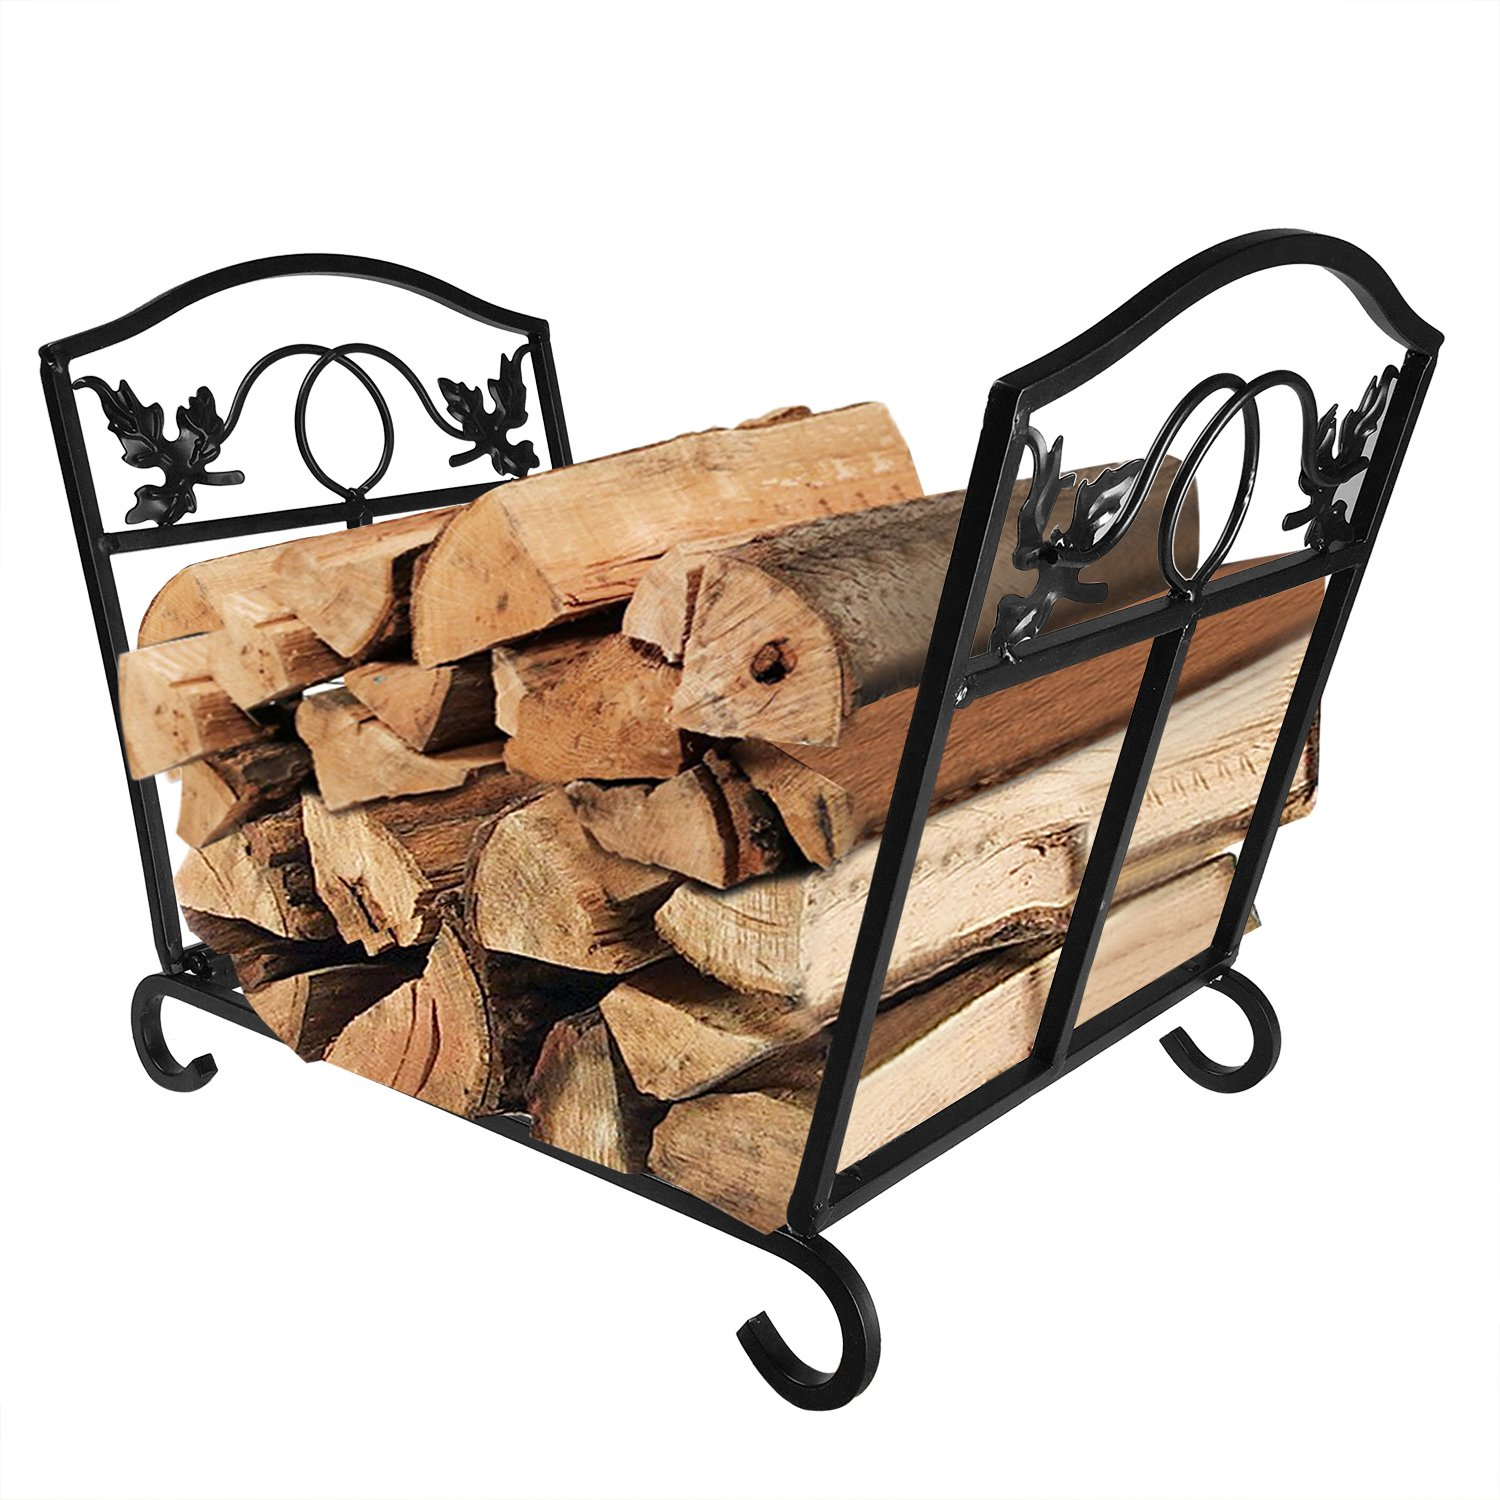 Fireplace Log Holder Wrought Iron Indoor Fire Wood Stove Stacking Rack Logs Bin Firewood Storage Carrier for Outdoor Fireplace Pit Decorative Wood Holders Fire Place Tools Accessories Black Amagabeli by AMAGABELI GARDEN & HOME